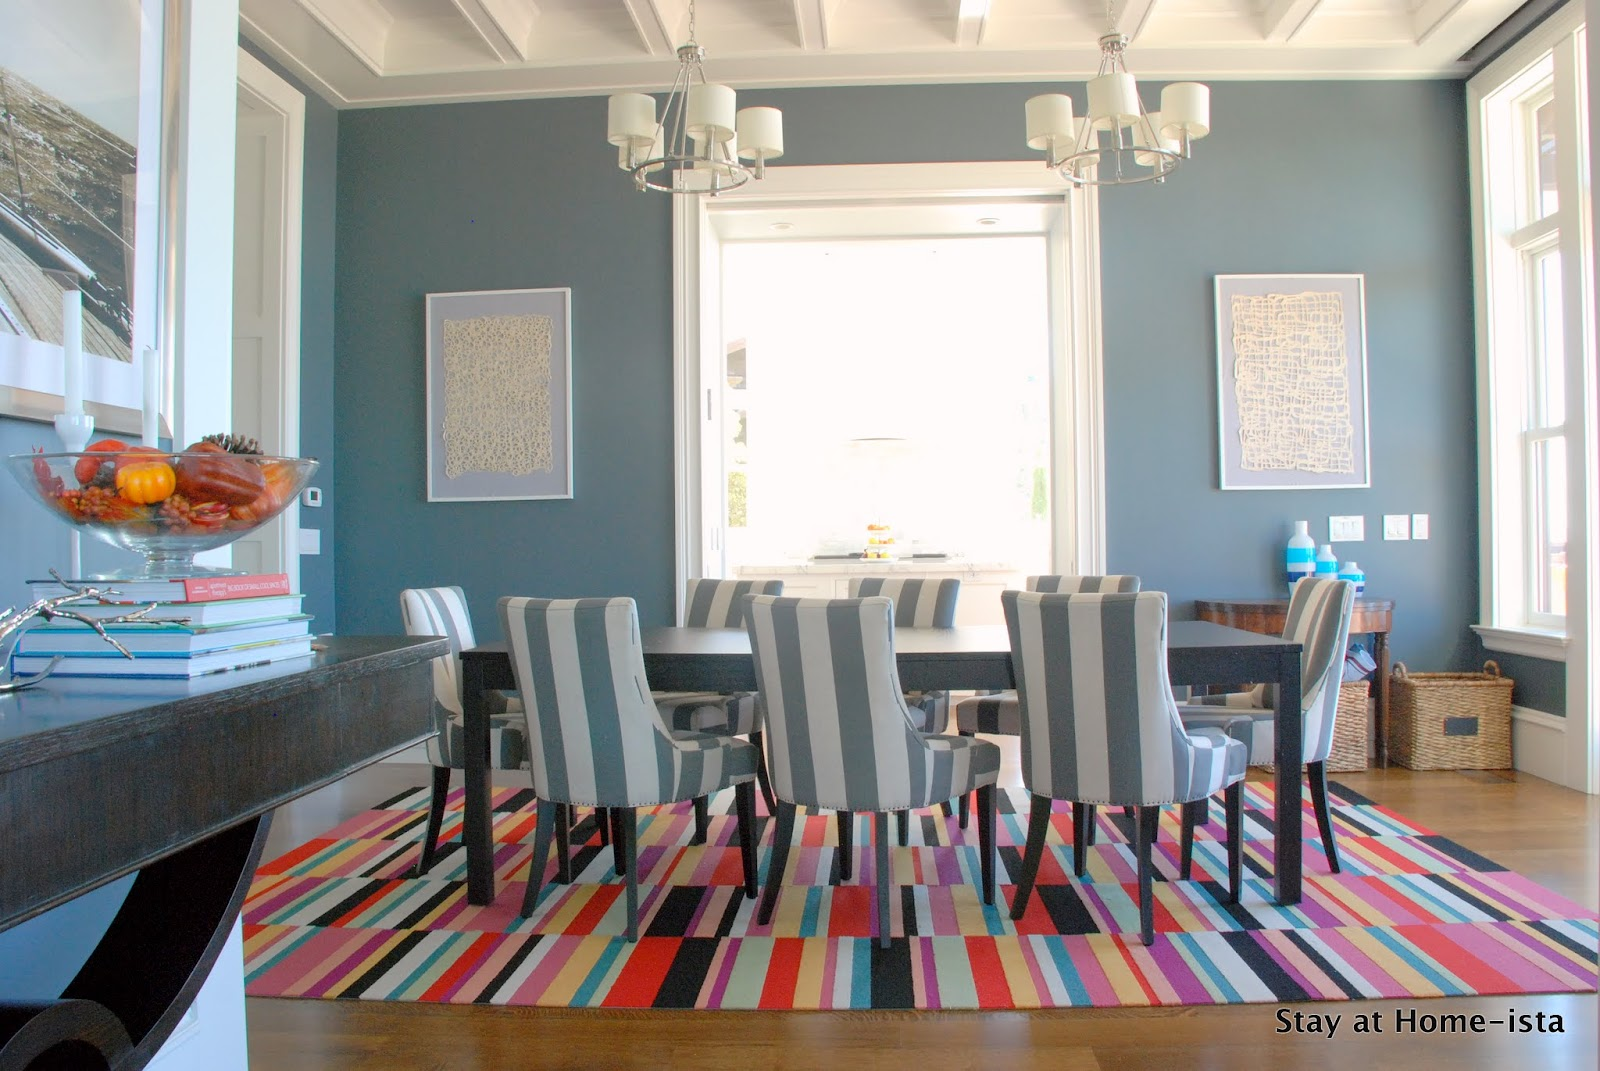 Diy Dining Room Art stay at home-ista: rainbow stripes for the dining room rug